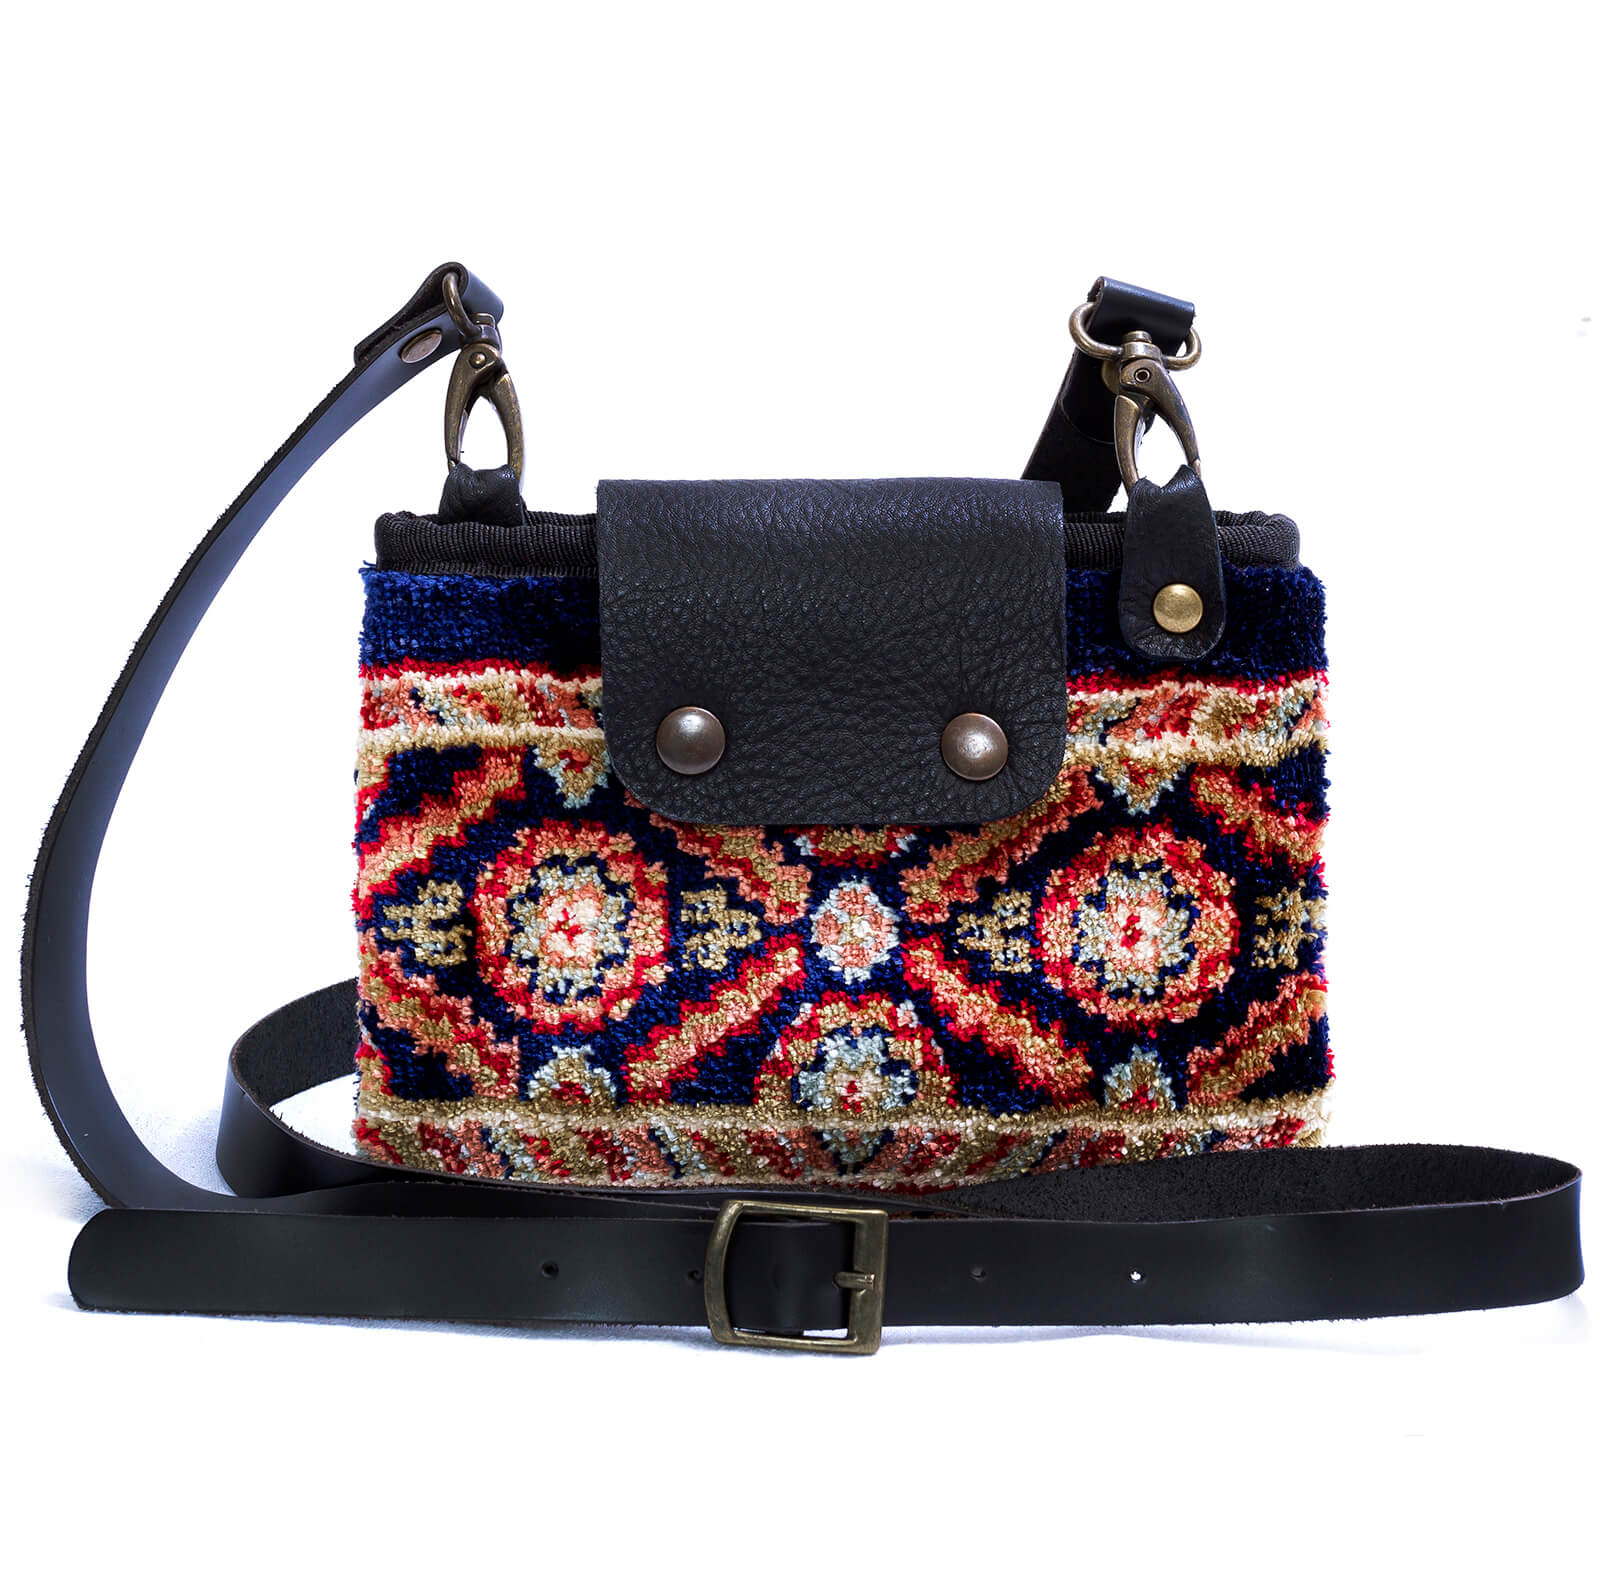 Image of MYSTERY Intarsia Navy Victorian Carpet Bag.